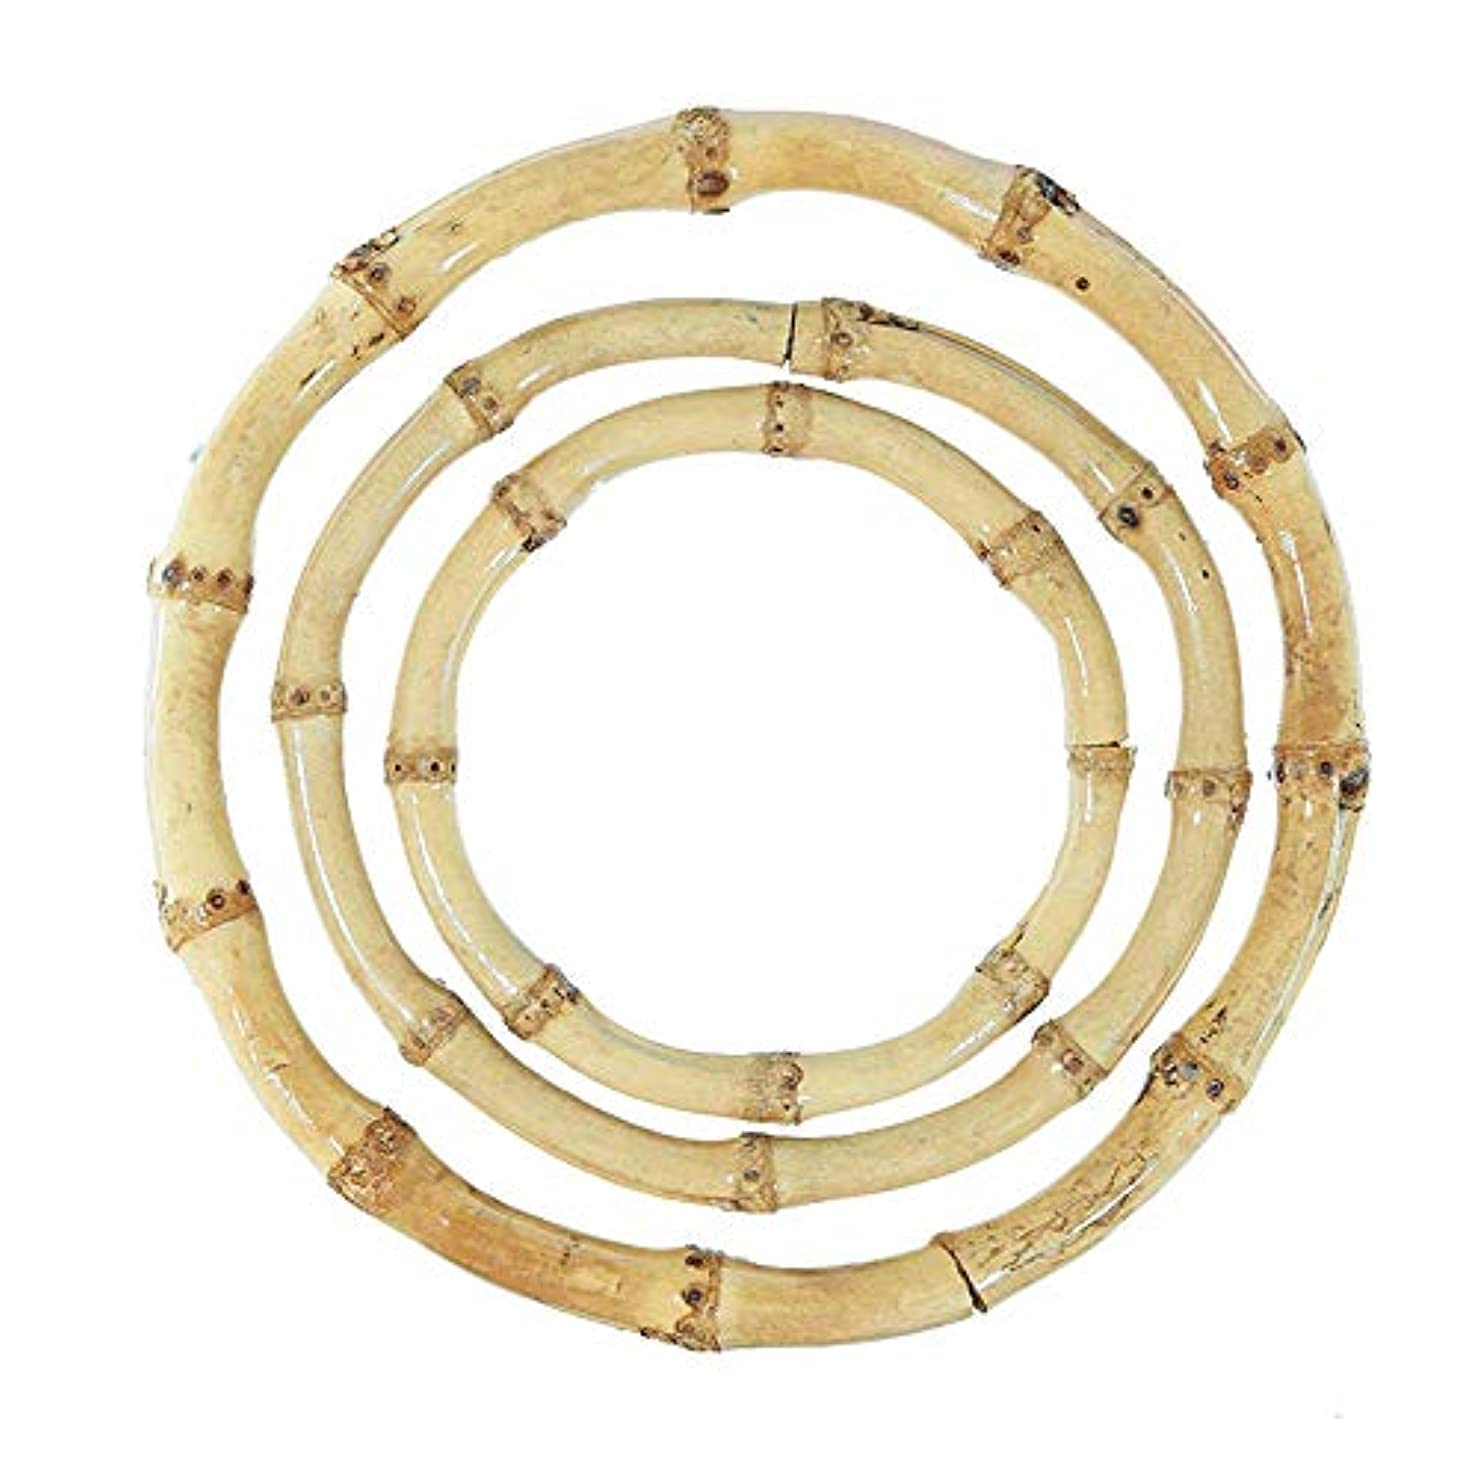 Pepperell Bamboo Craft Rings for Macrame 3 Pack Bundle 3.5